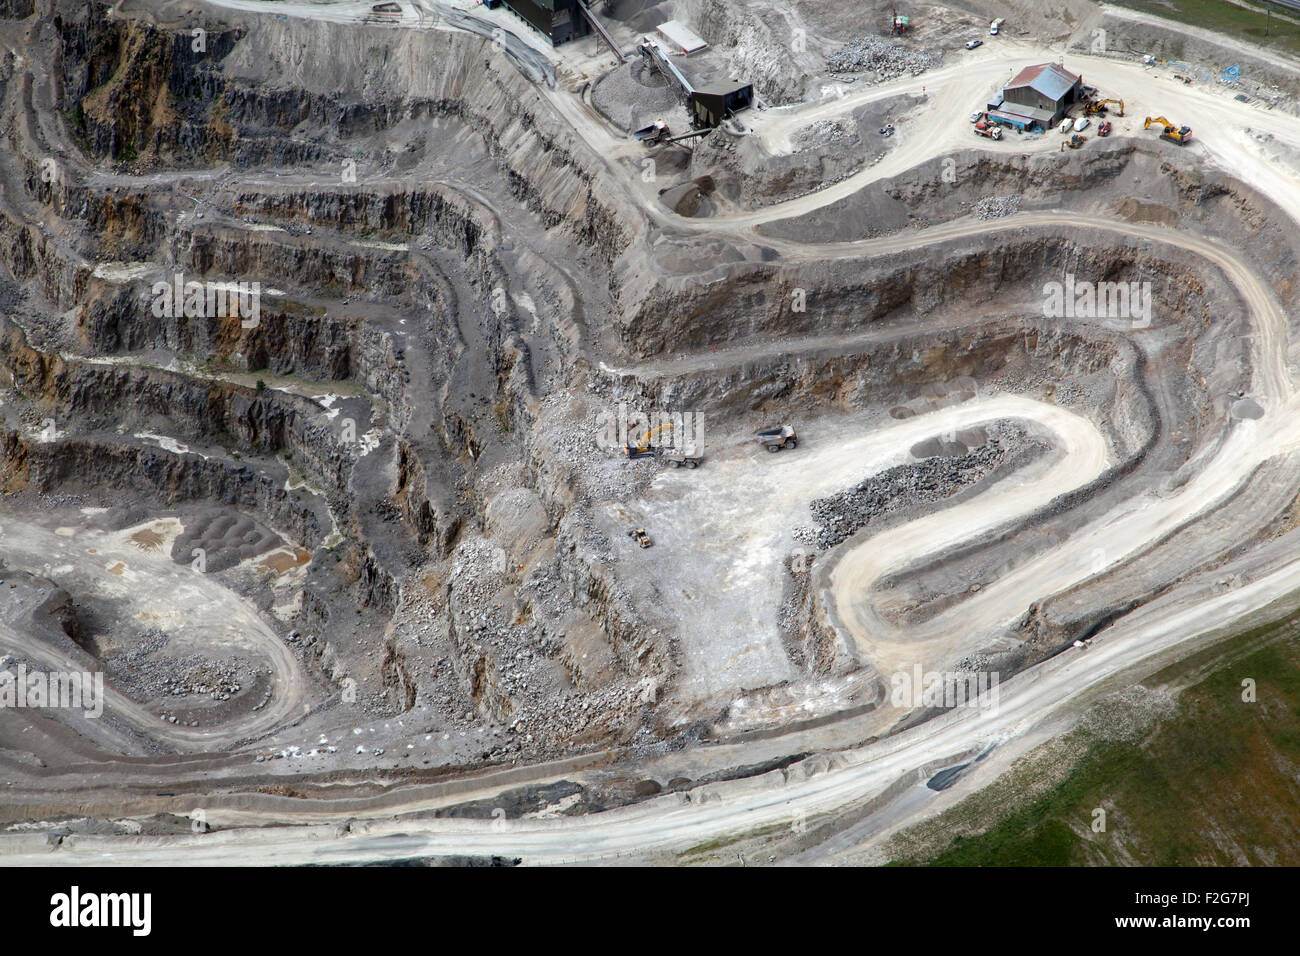 aerial view of the inside a stone quarry, Yorkshire, UK - Stock Image